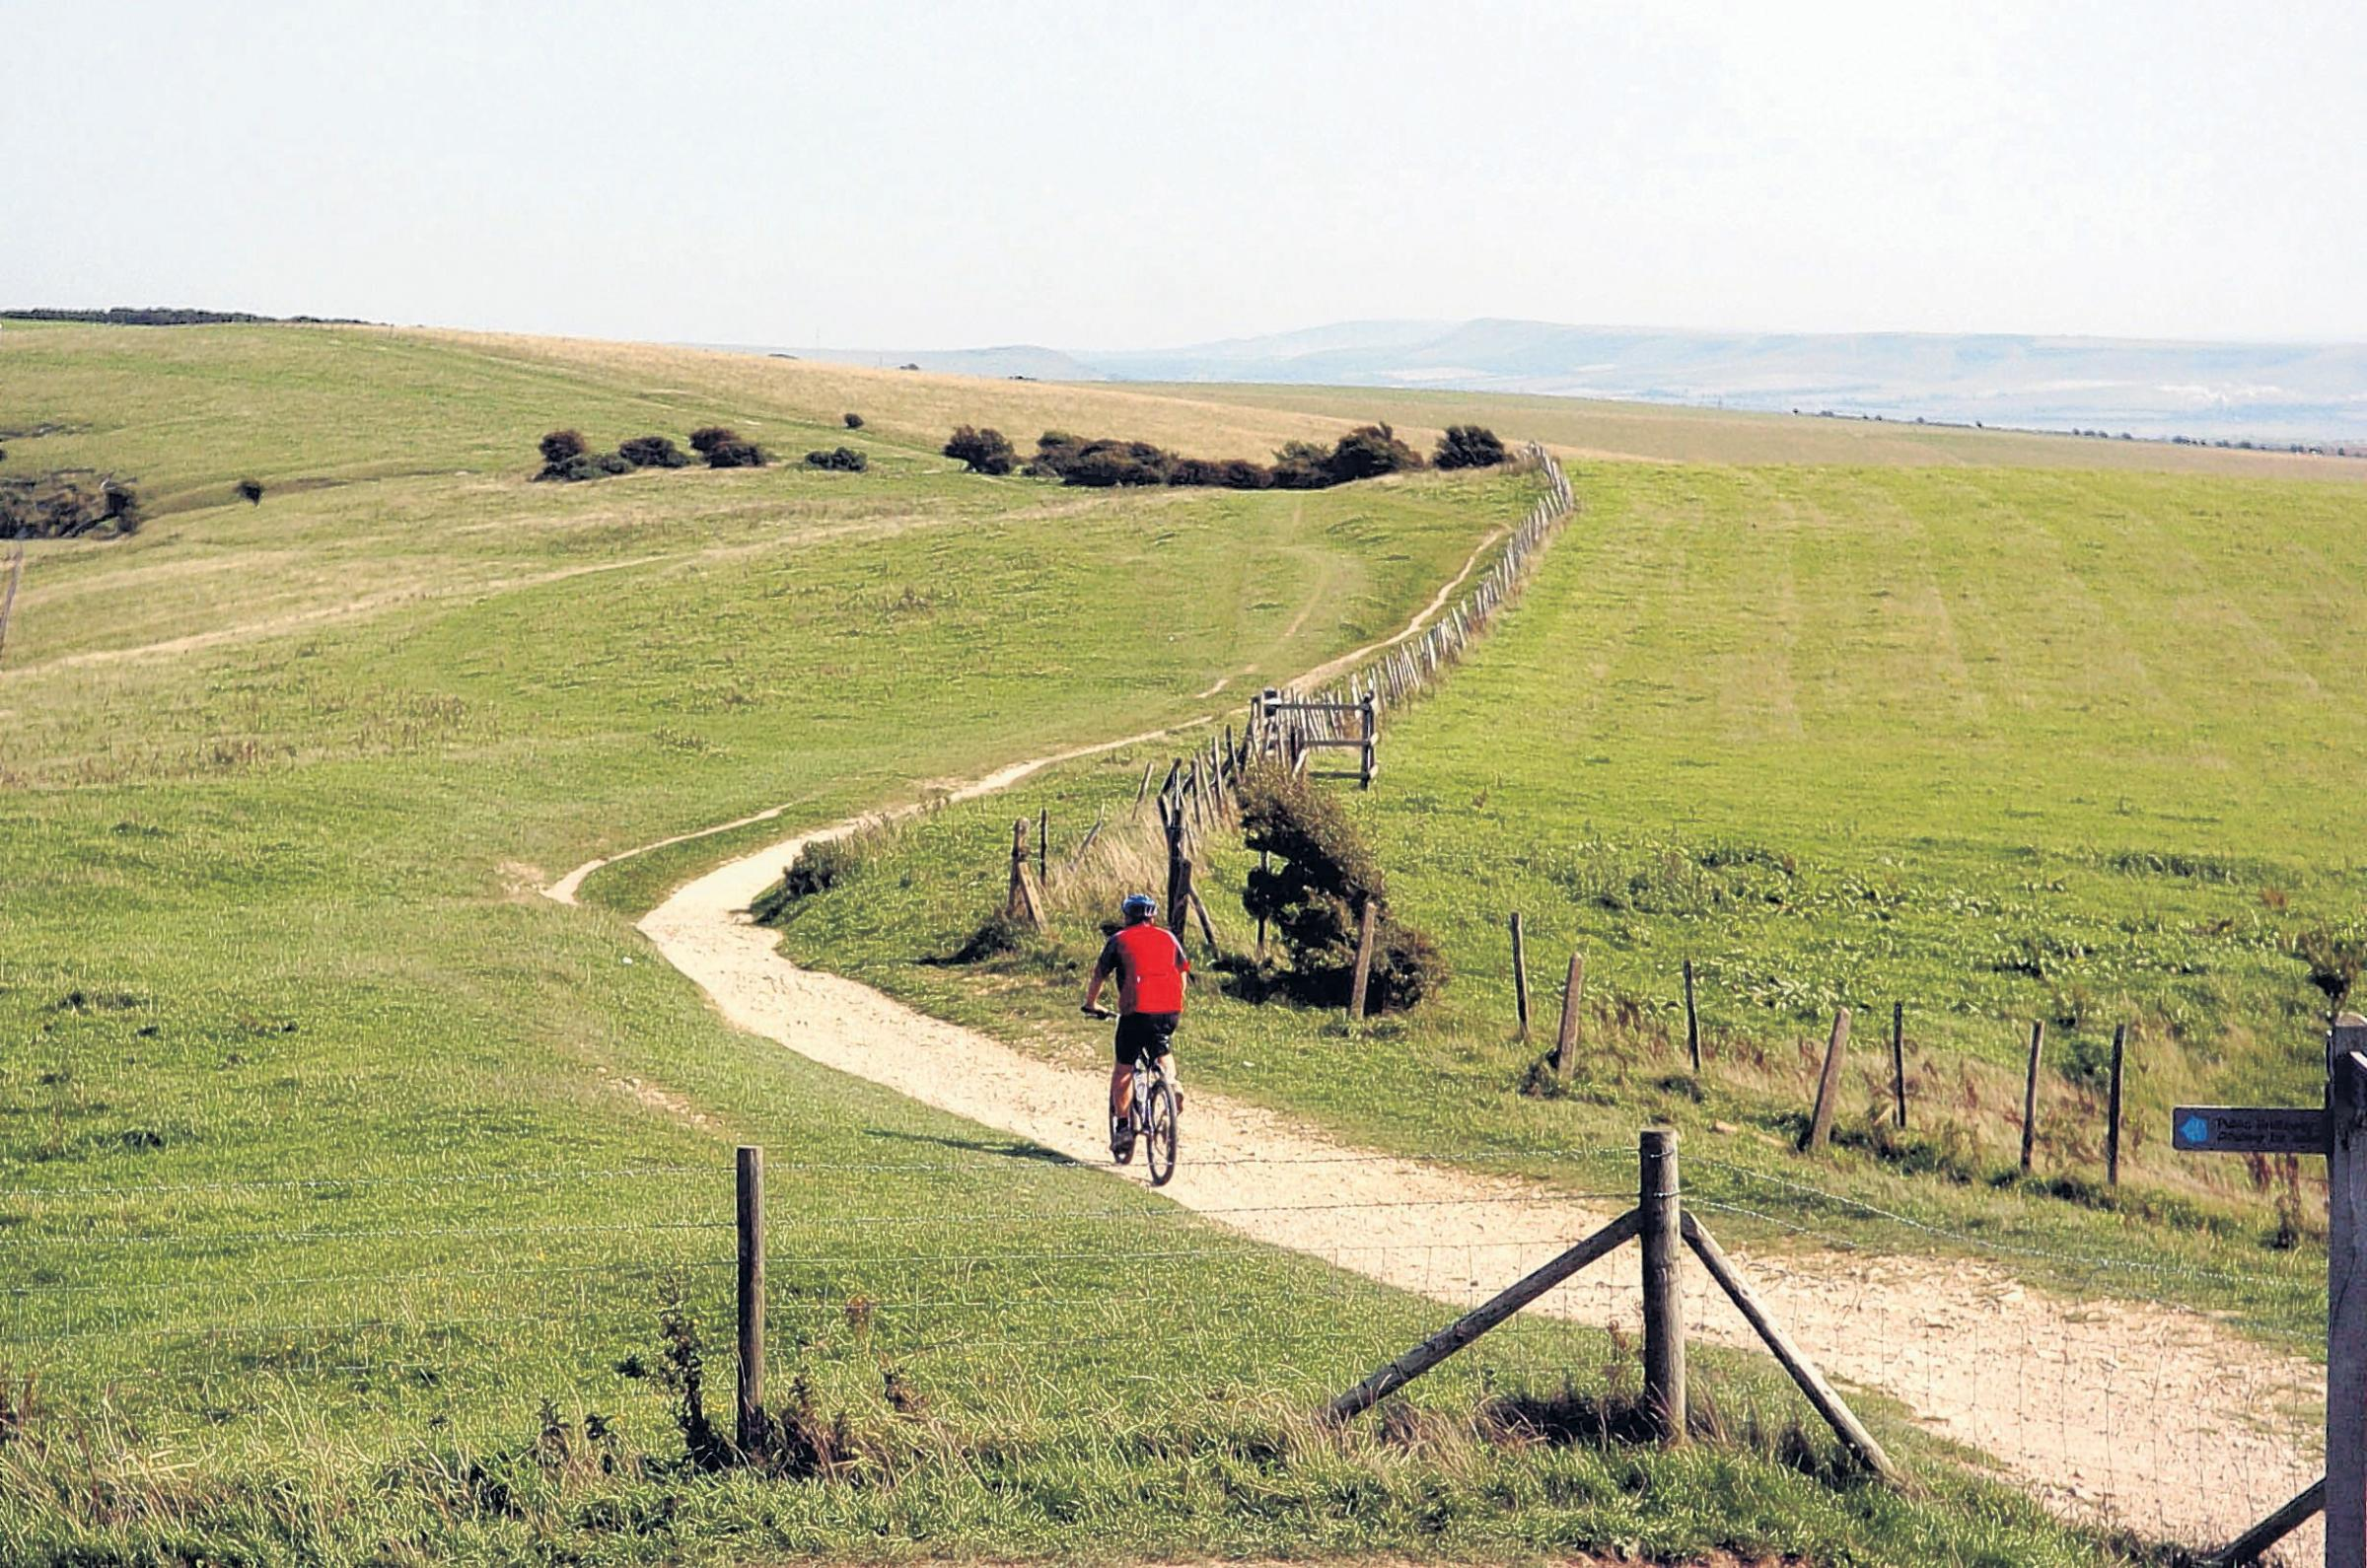 Cycling is a popular way to enjoy the South Downs.